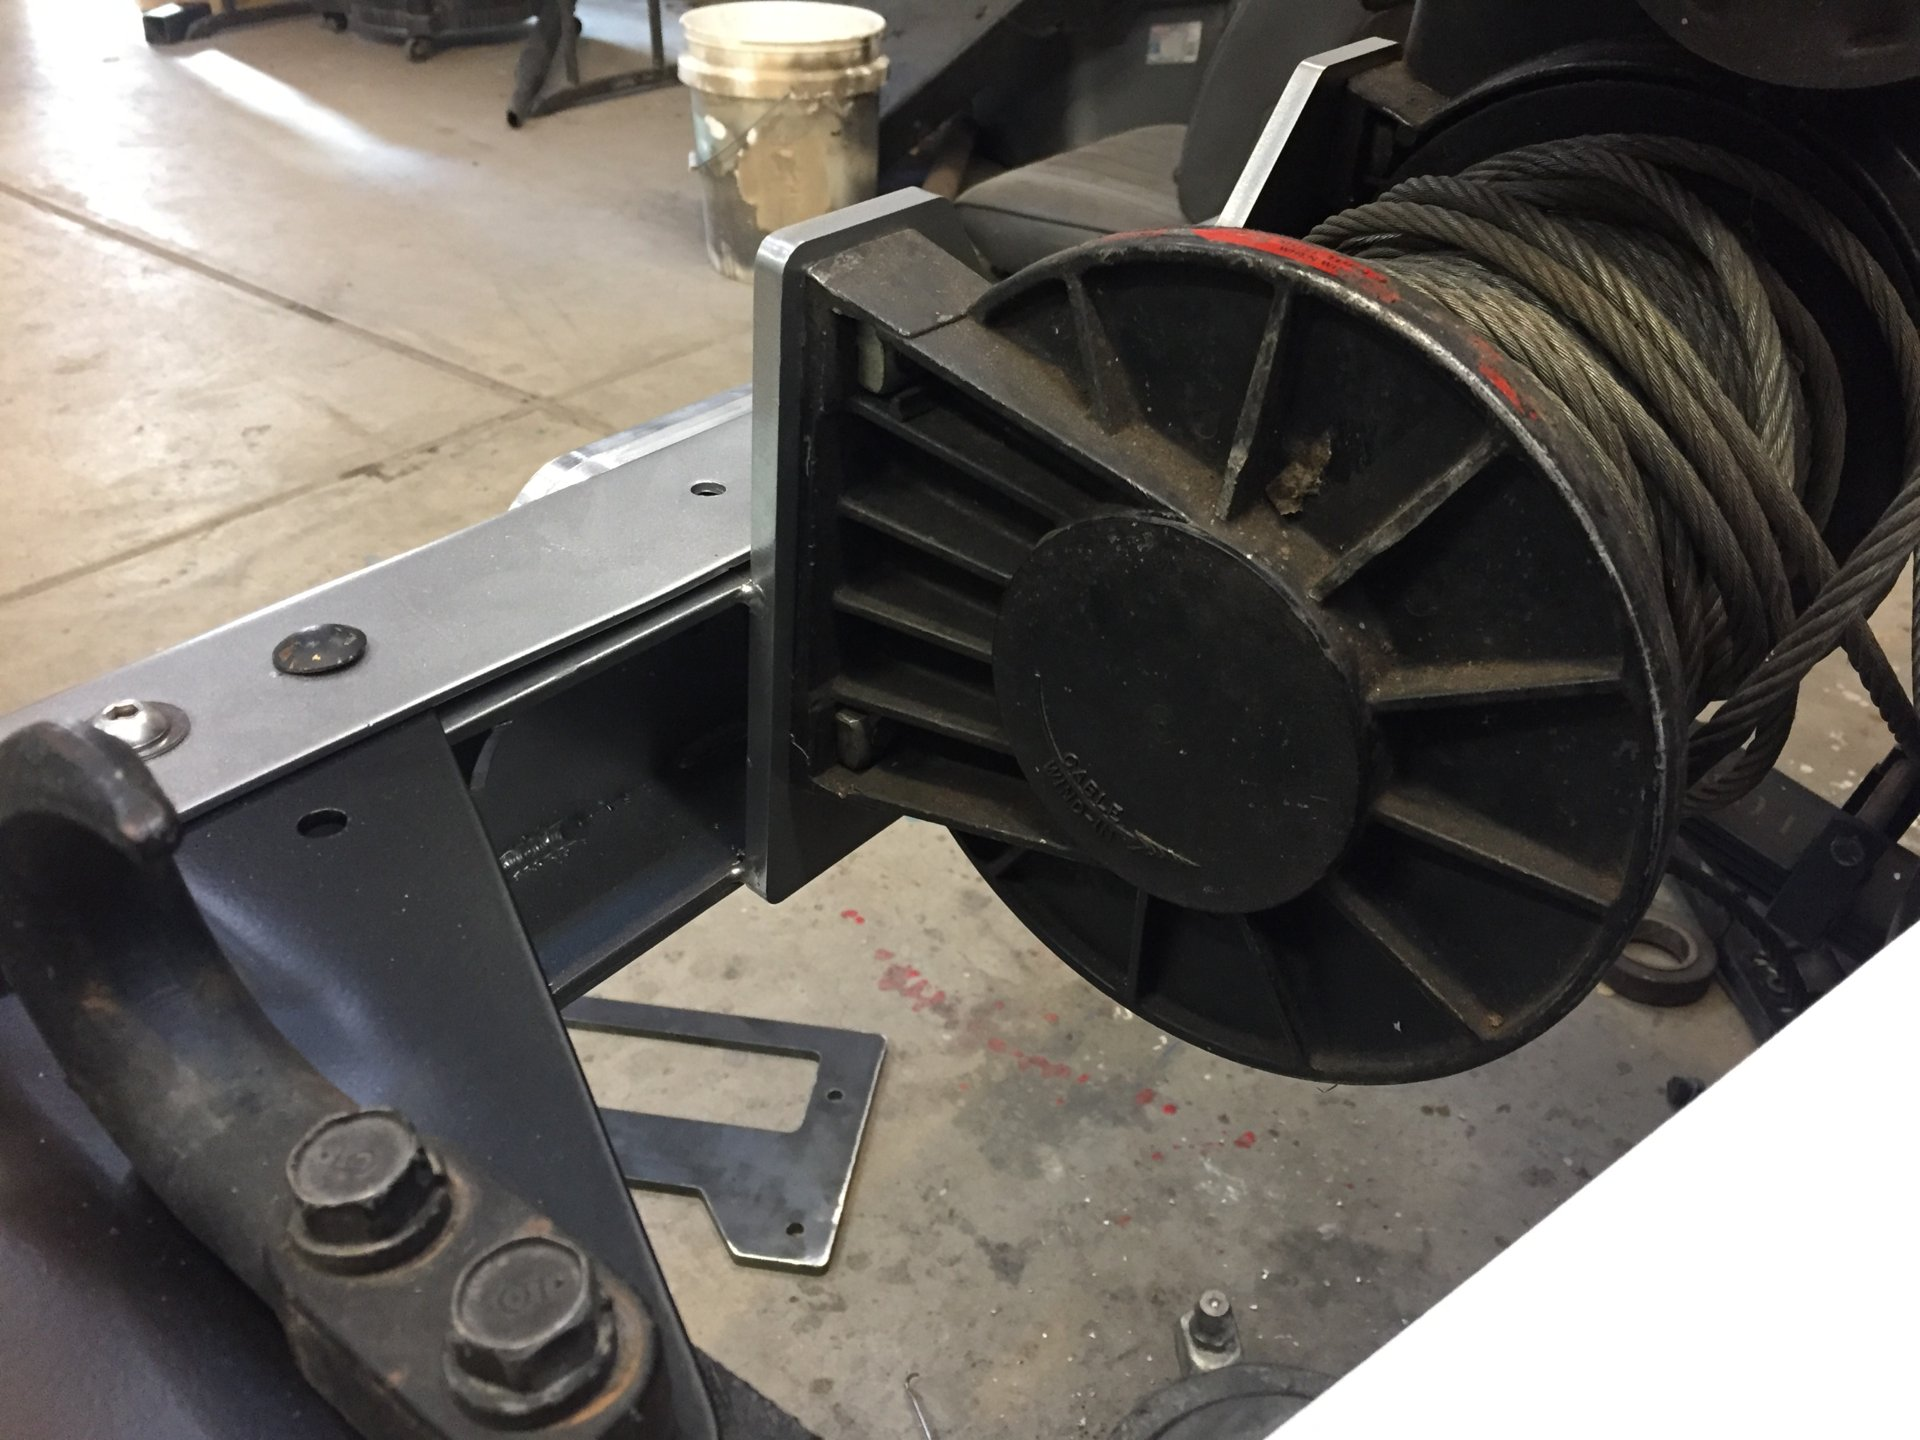 8274 Winch Mounting Plate | IH8MUD Forum